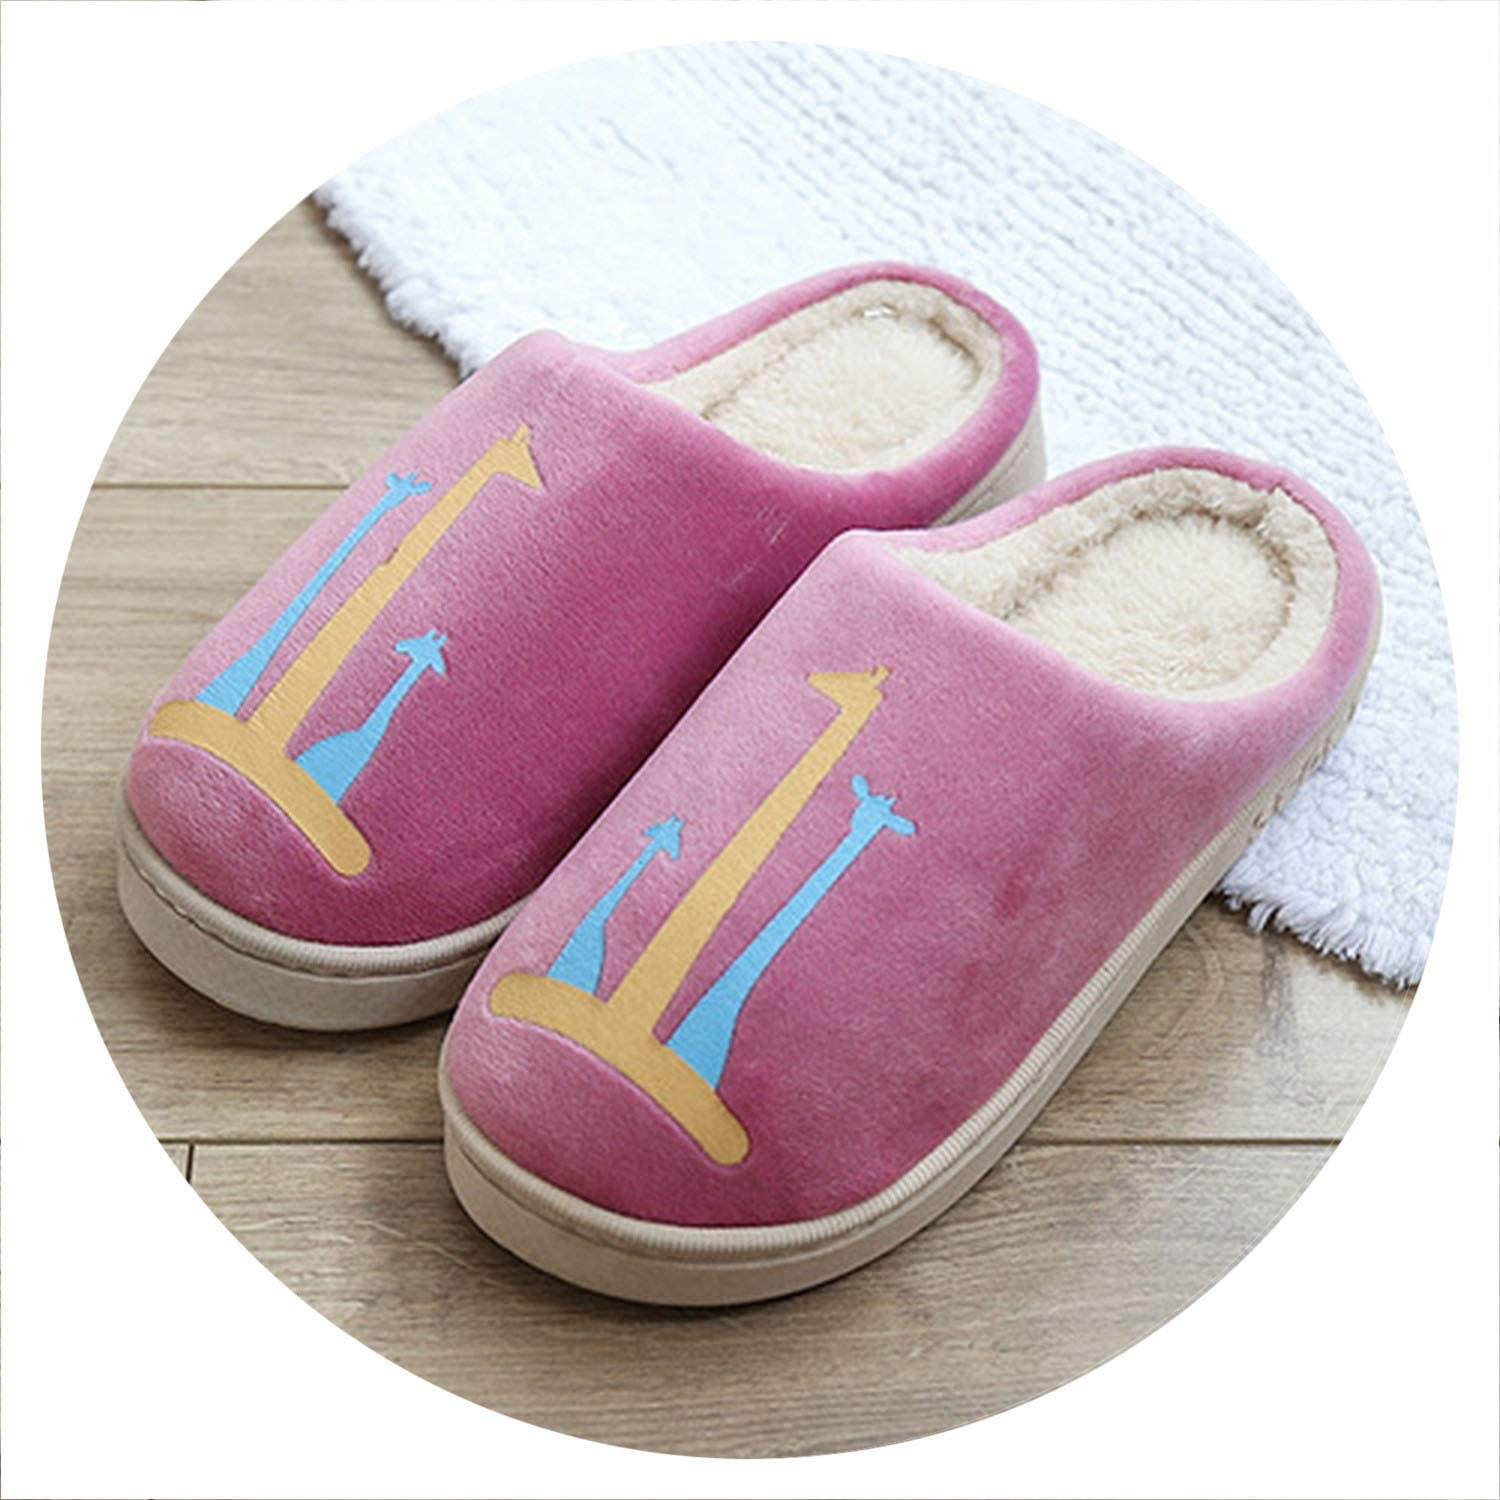 Together to create a miracle 2018 Indoor Slipper Soft Plush Cotton Cute Home Slippers shoes Floor Home Furry Women for